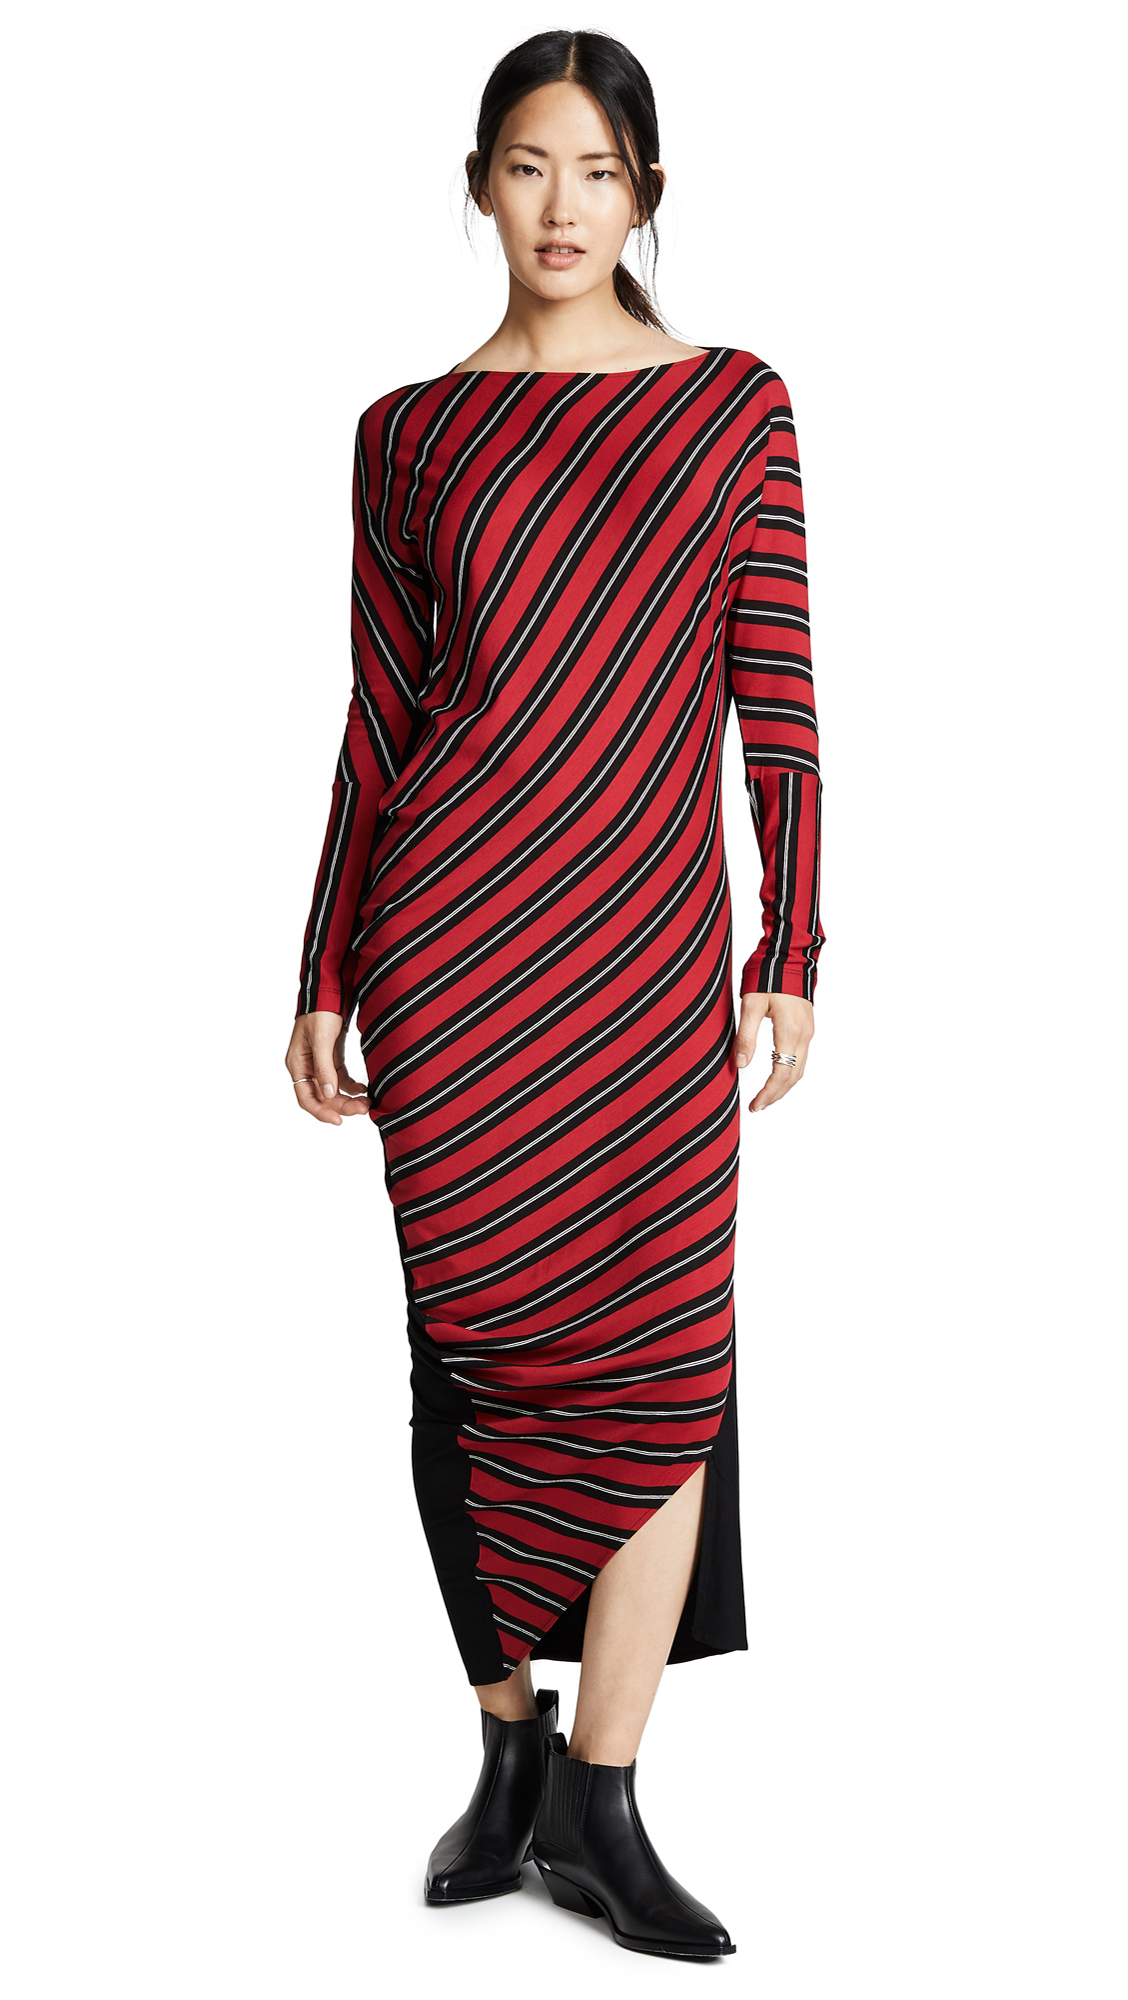 Zero + Maria Cornejo Lui Dress - Black/Rouge